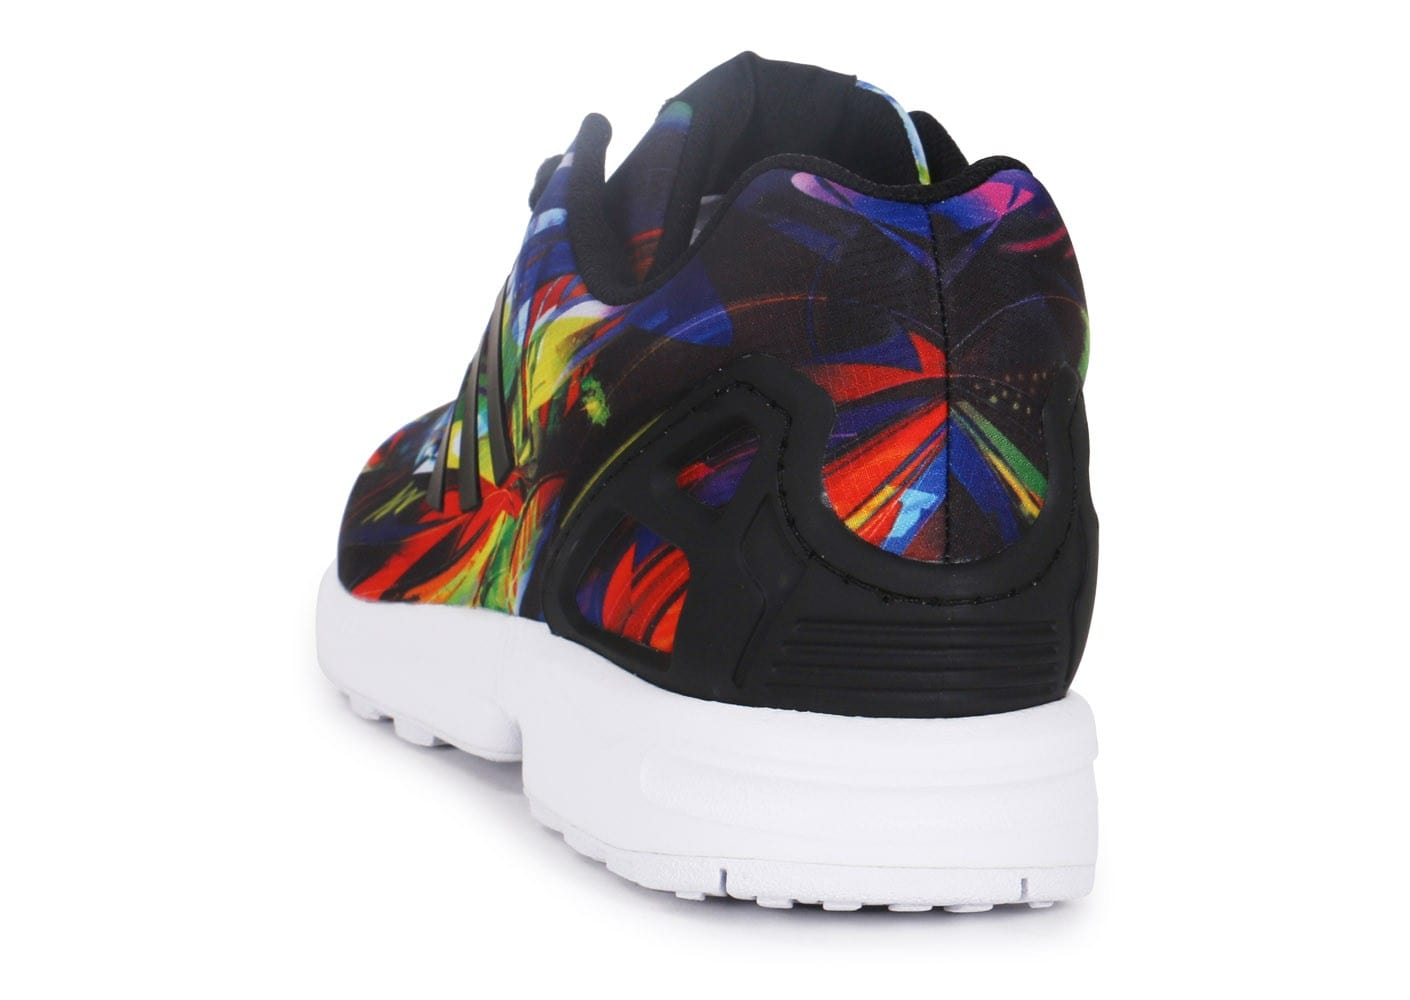 Chaussures Print Homme Flux Chausport Multicolore Baskets Zx Adidas pPUI8q